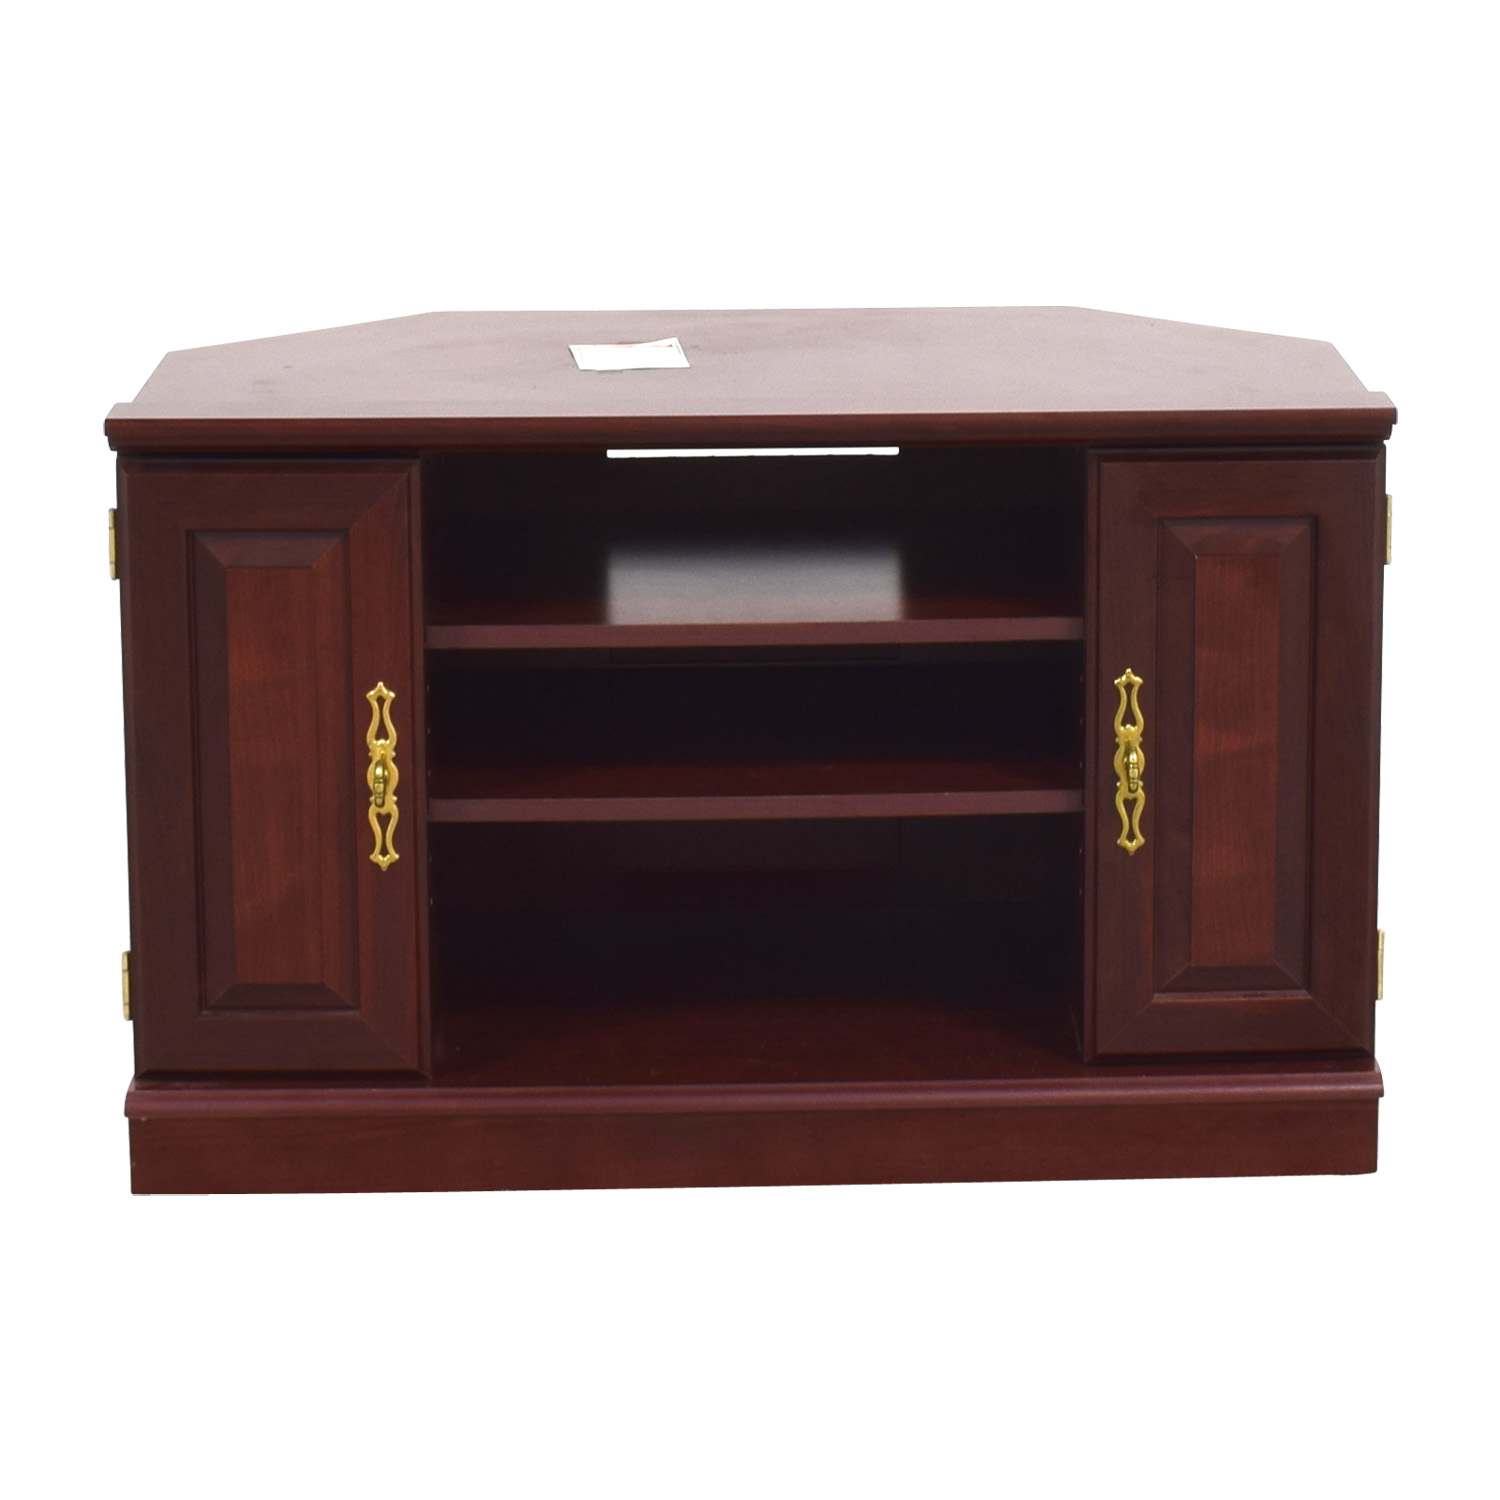 Contemporary Mahogany TV Stand